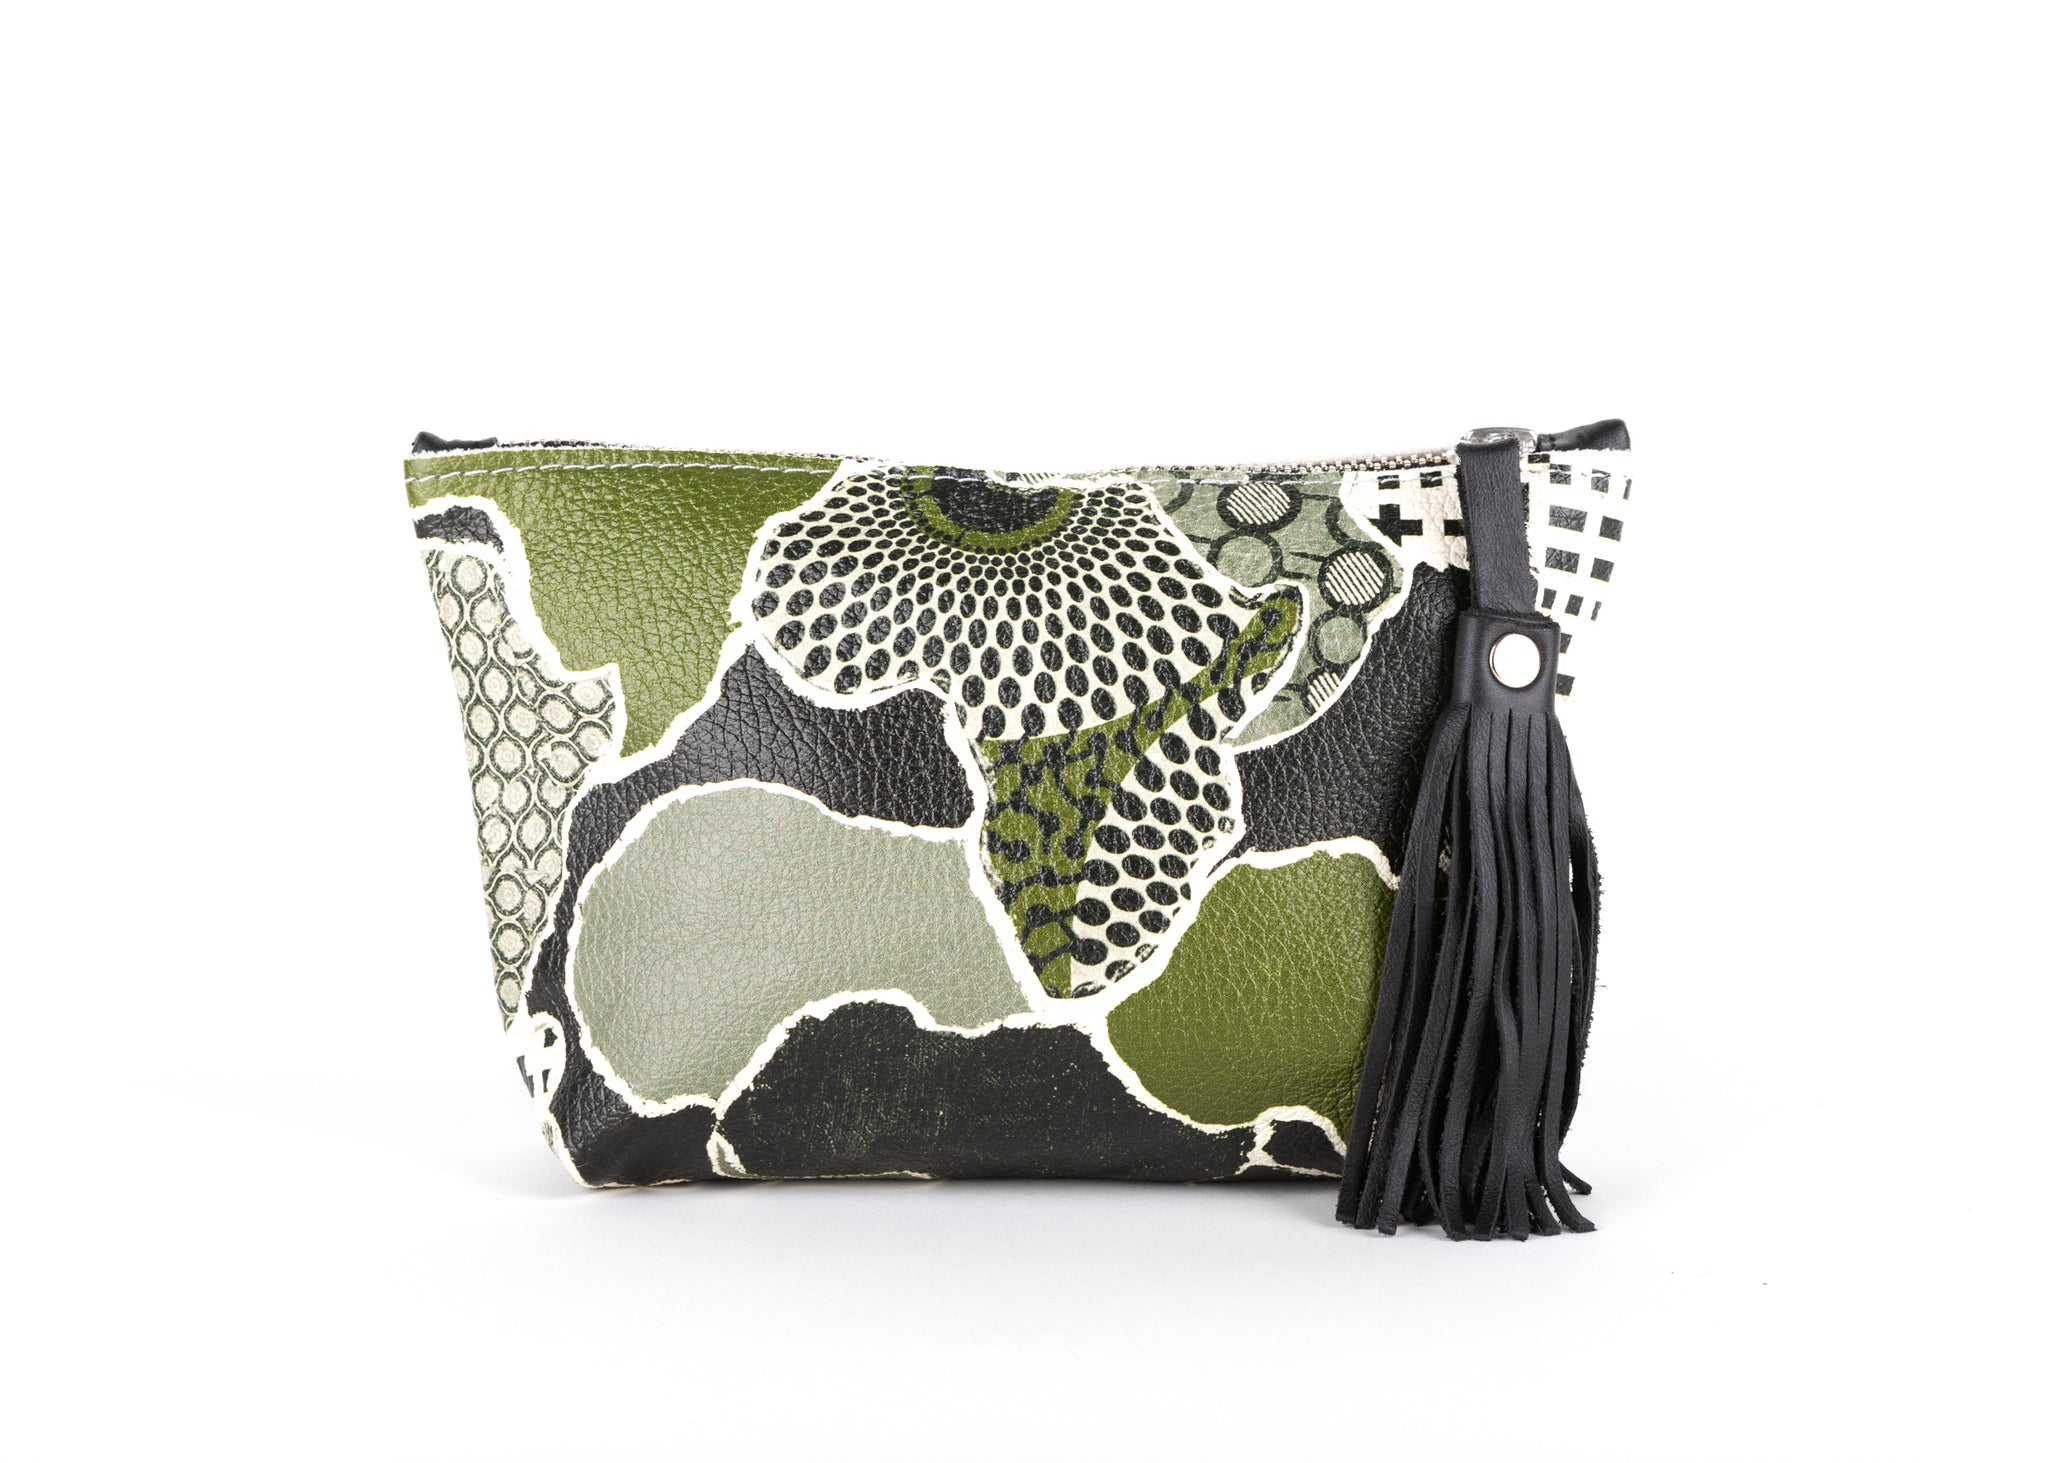 Africa Purse leather